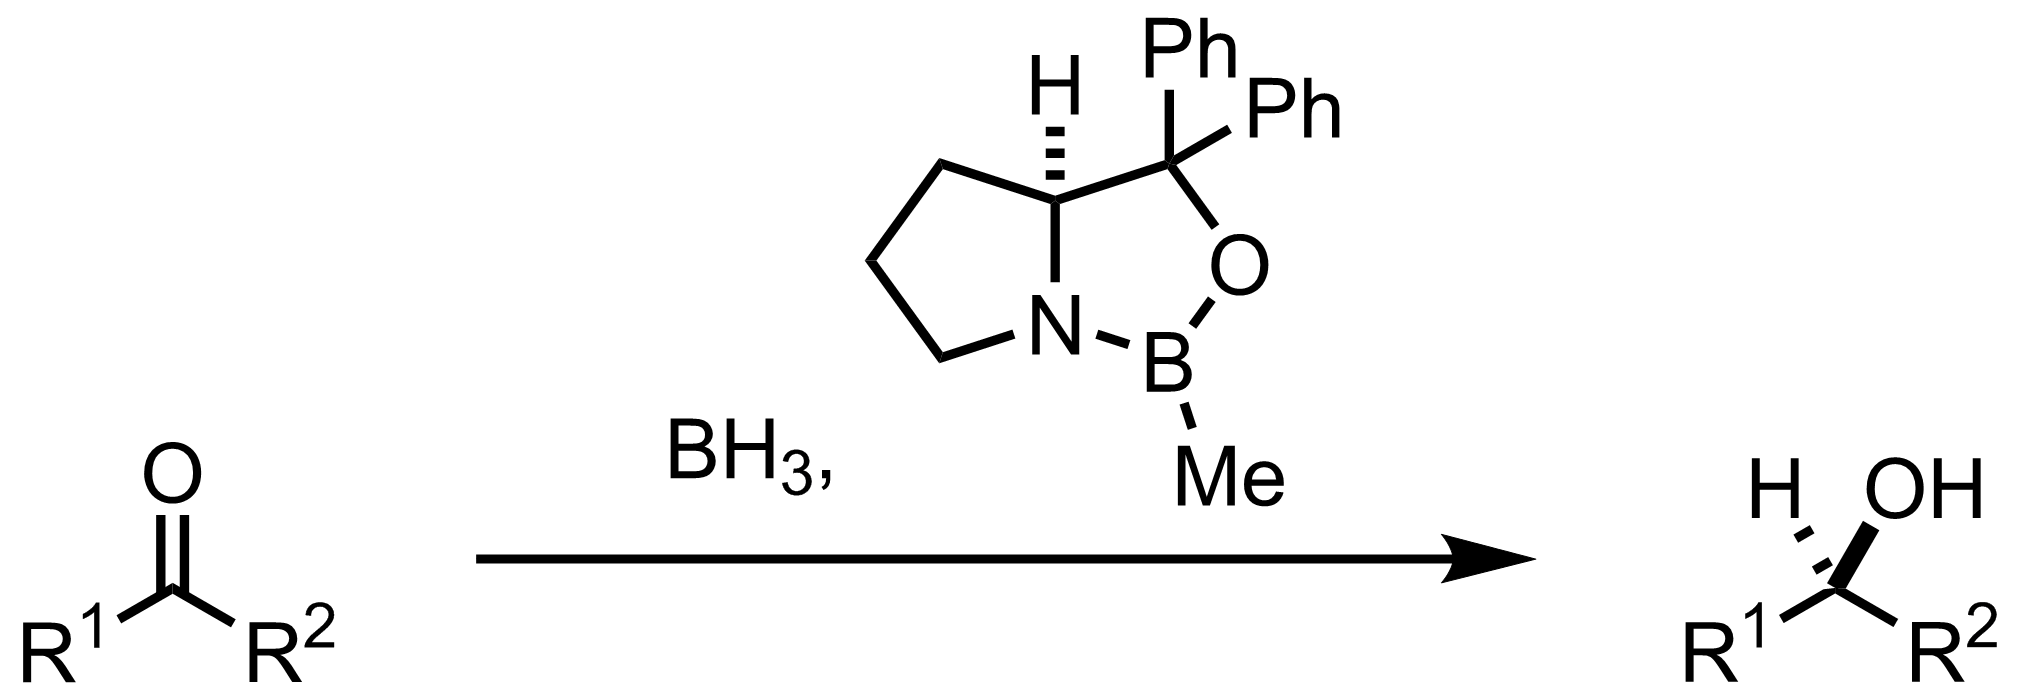 Schematic representation of the Corey-Itsuno Reaction.